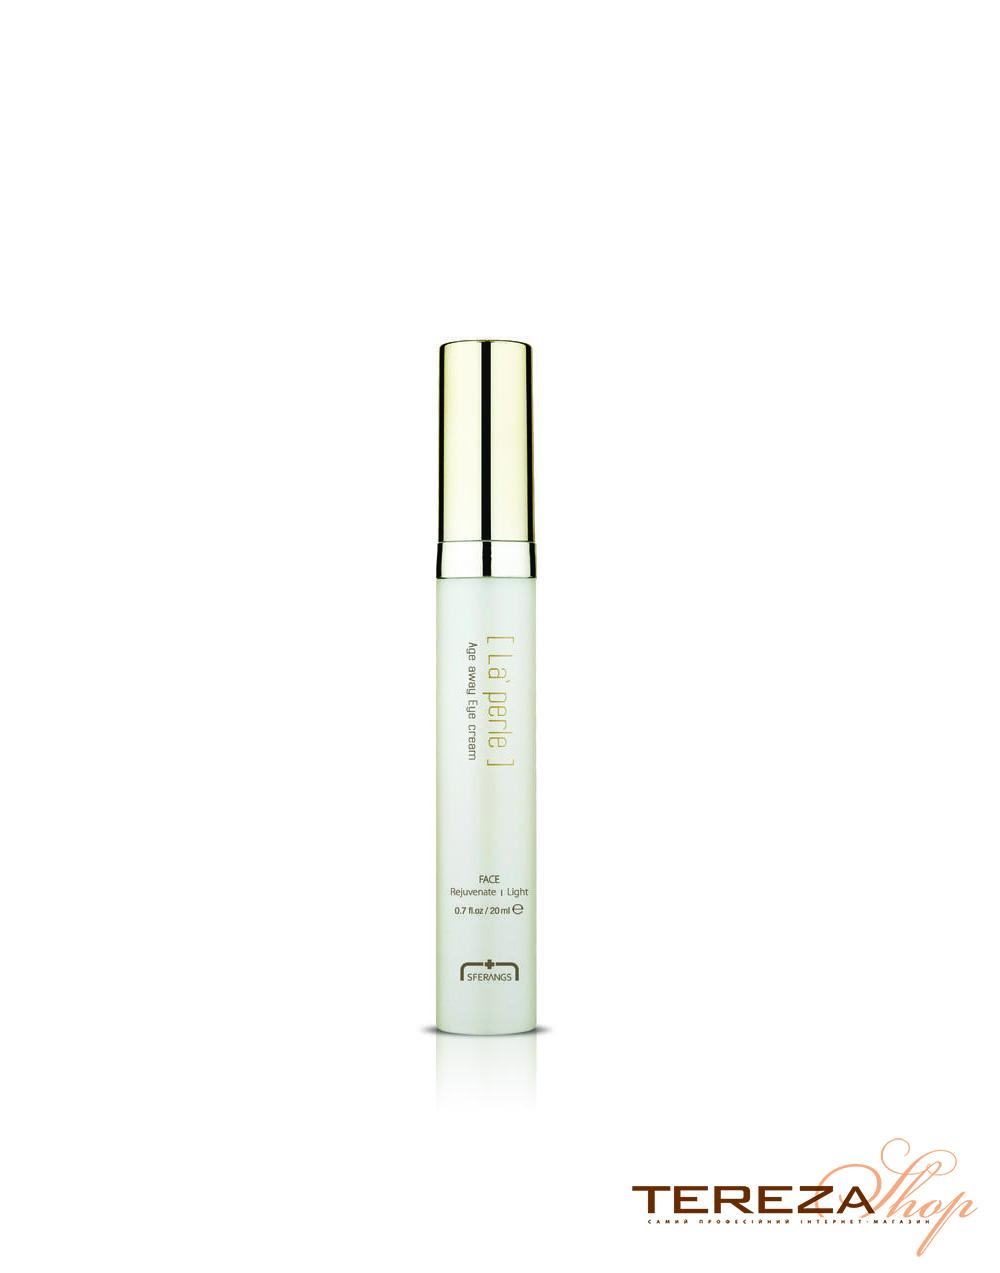 LA'PERLE WRINKLE AWAY EYE CREAM SFERANGS | Tereza Shop